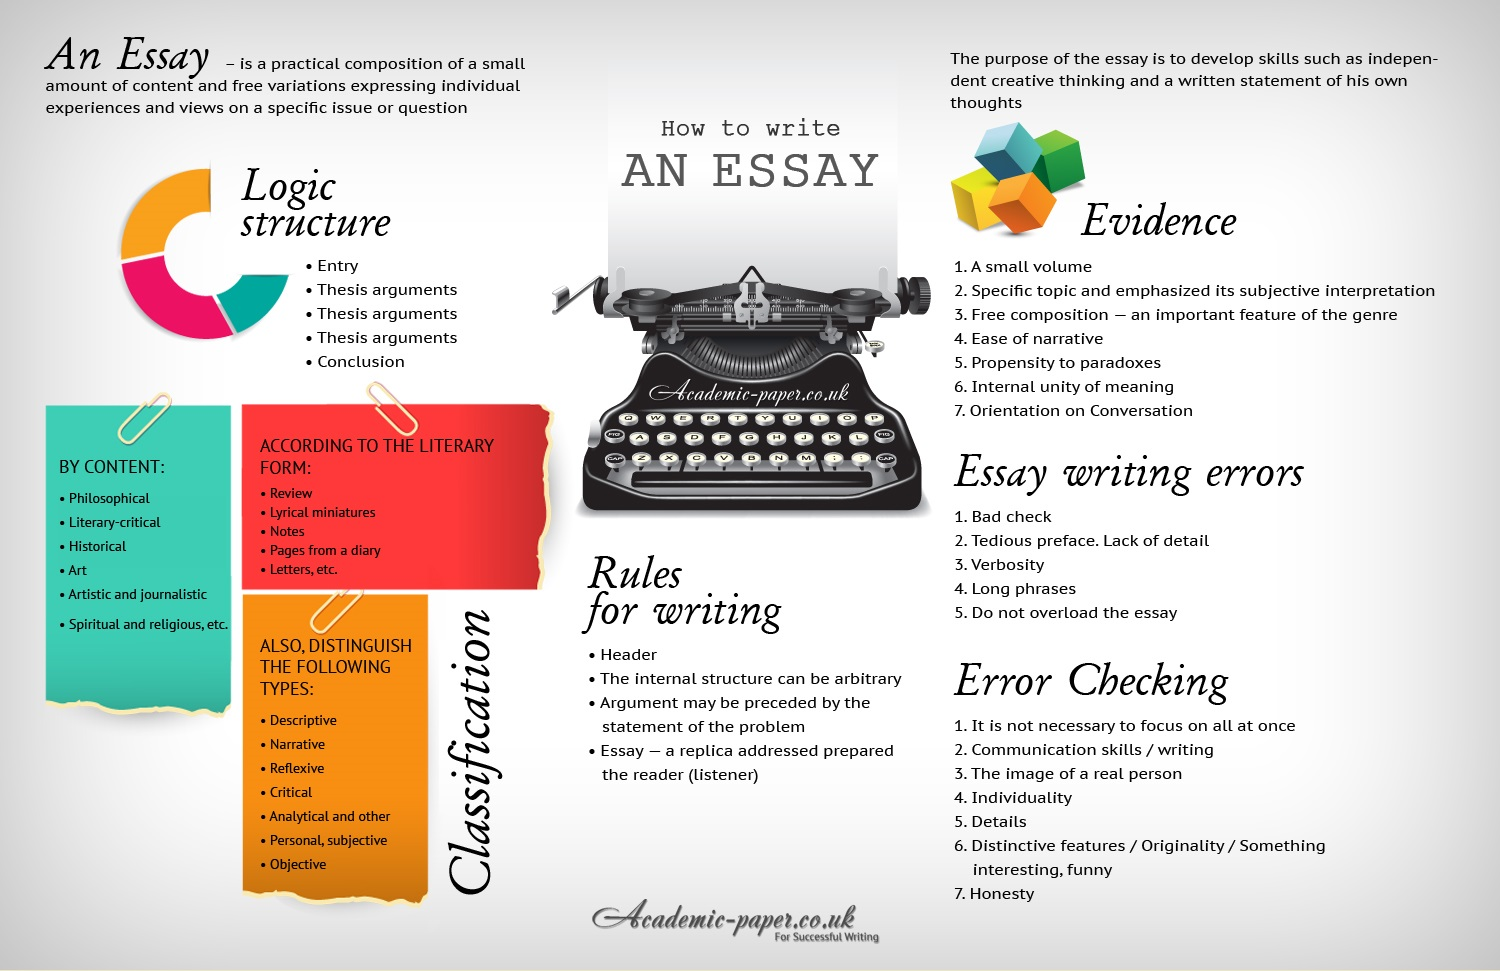 timed essay writing practice Contents how to write great essays v the more you know before writing a timed essay,the less and grammar,to finding and taking practice essay.